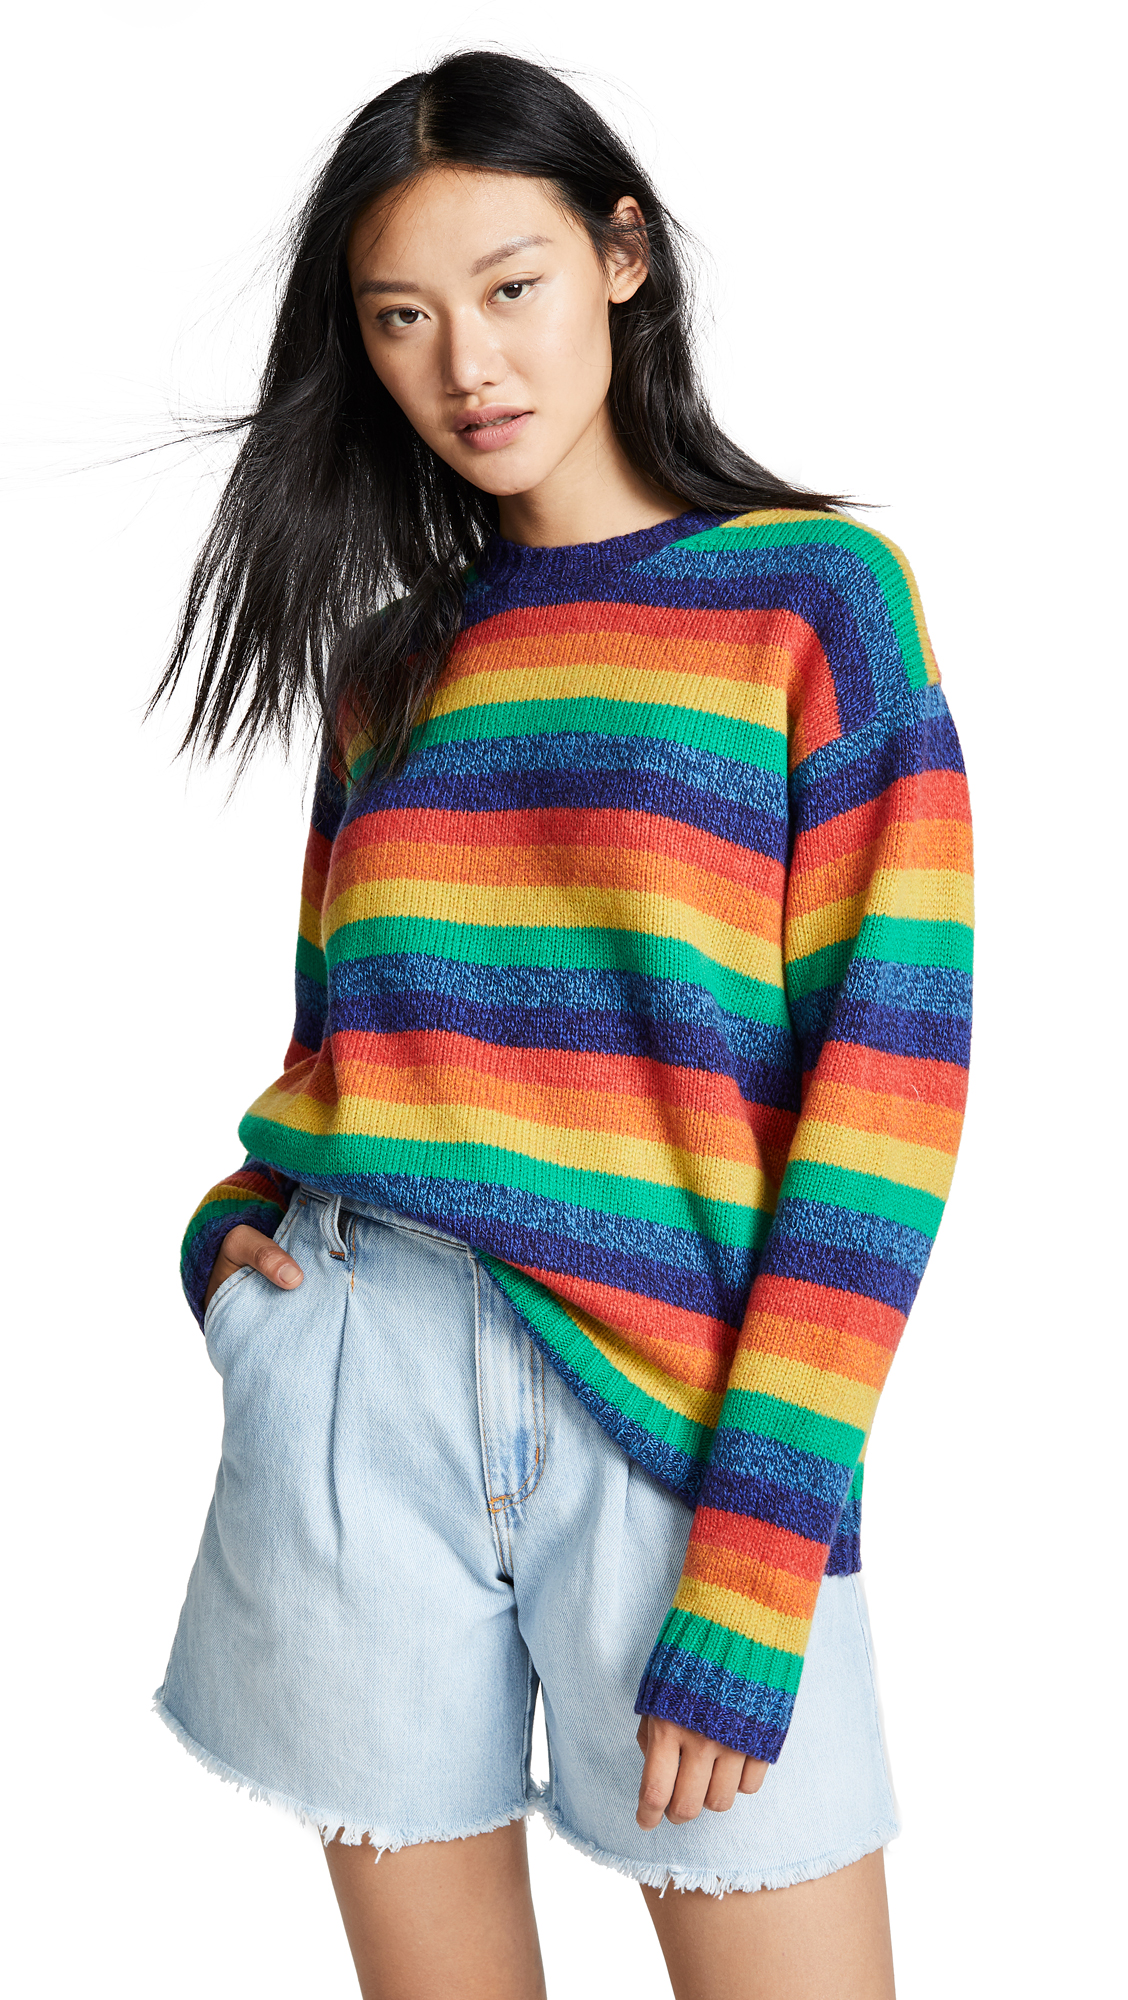 Acne Studios Samara Rainbow-Stripe Wool Sweater In Multi ... c79d0e09c9d